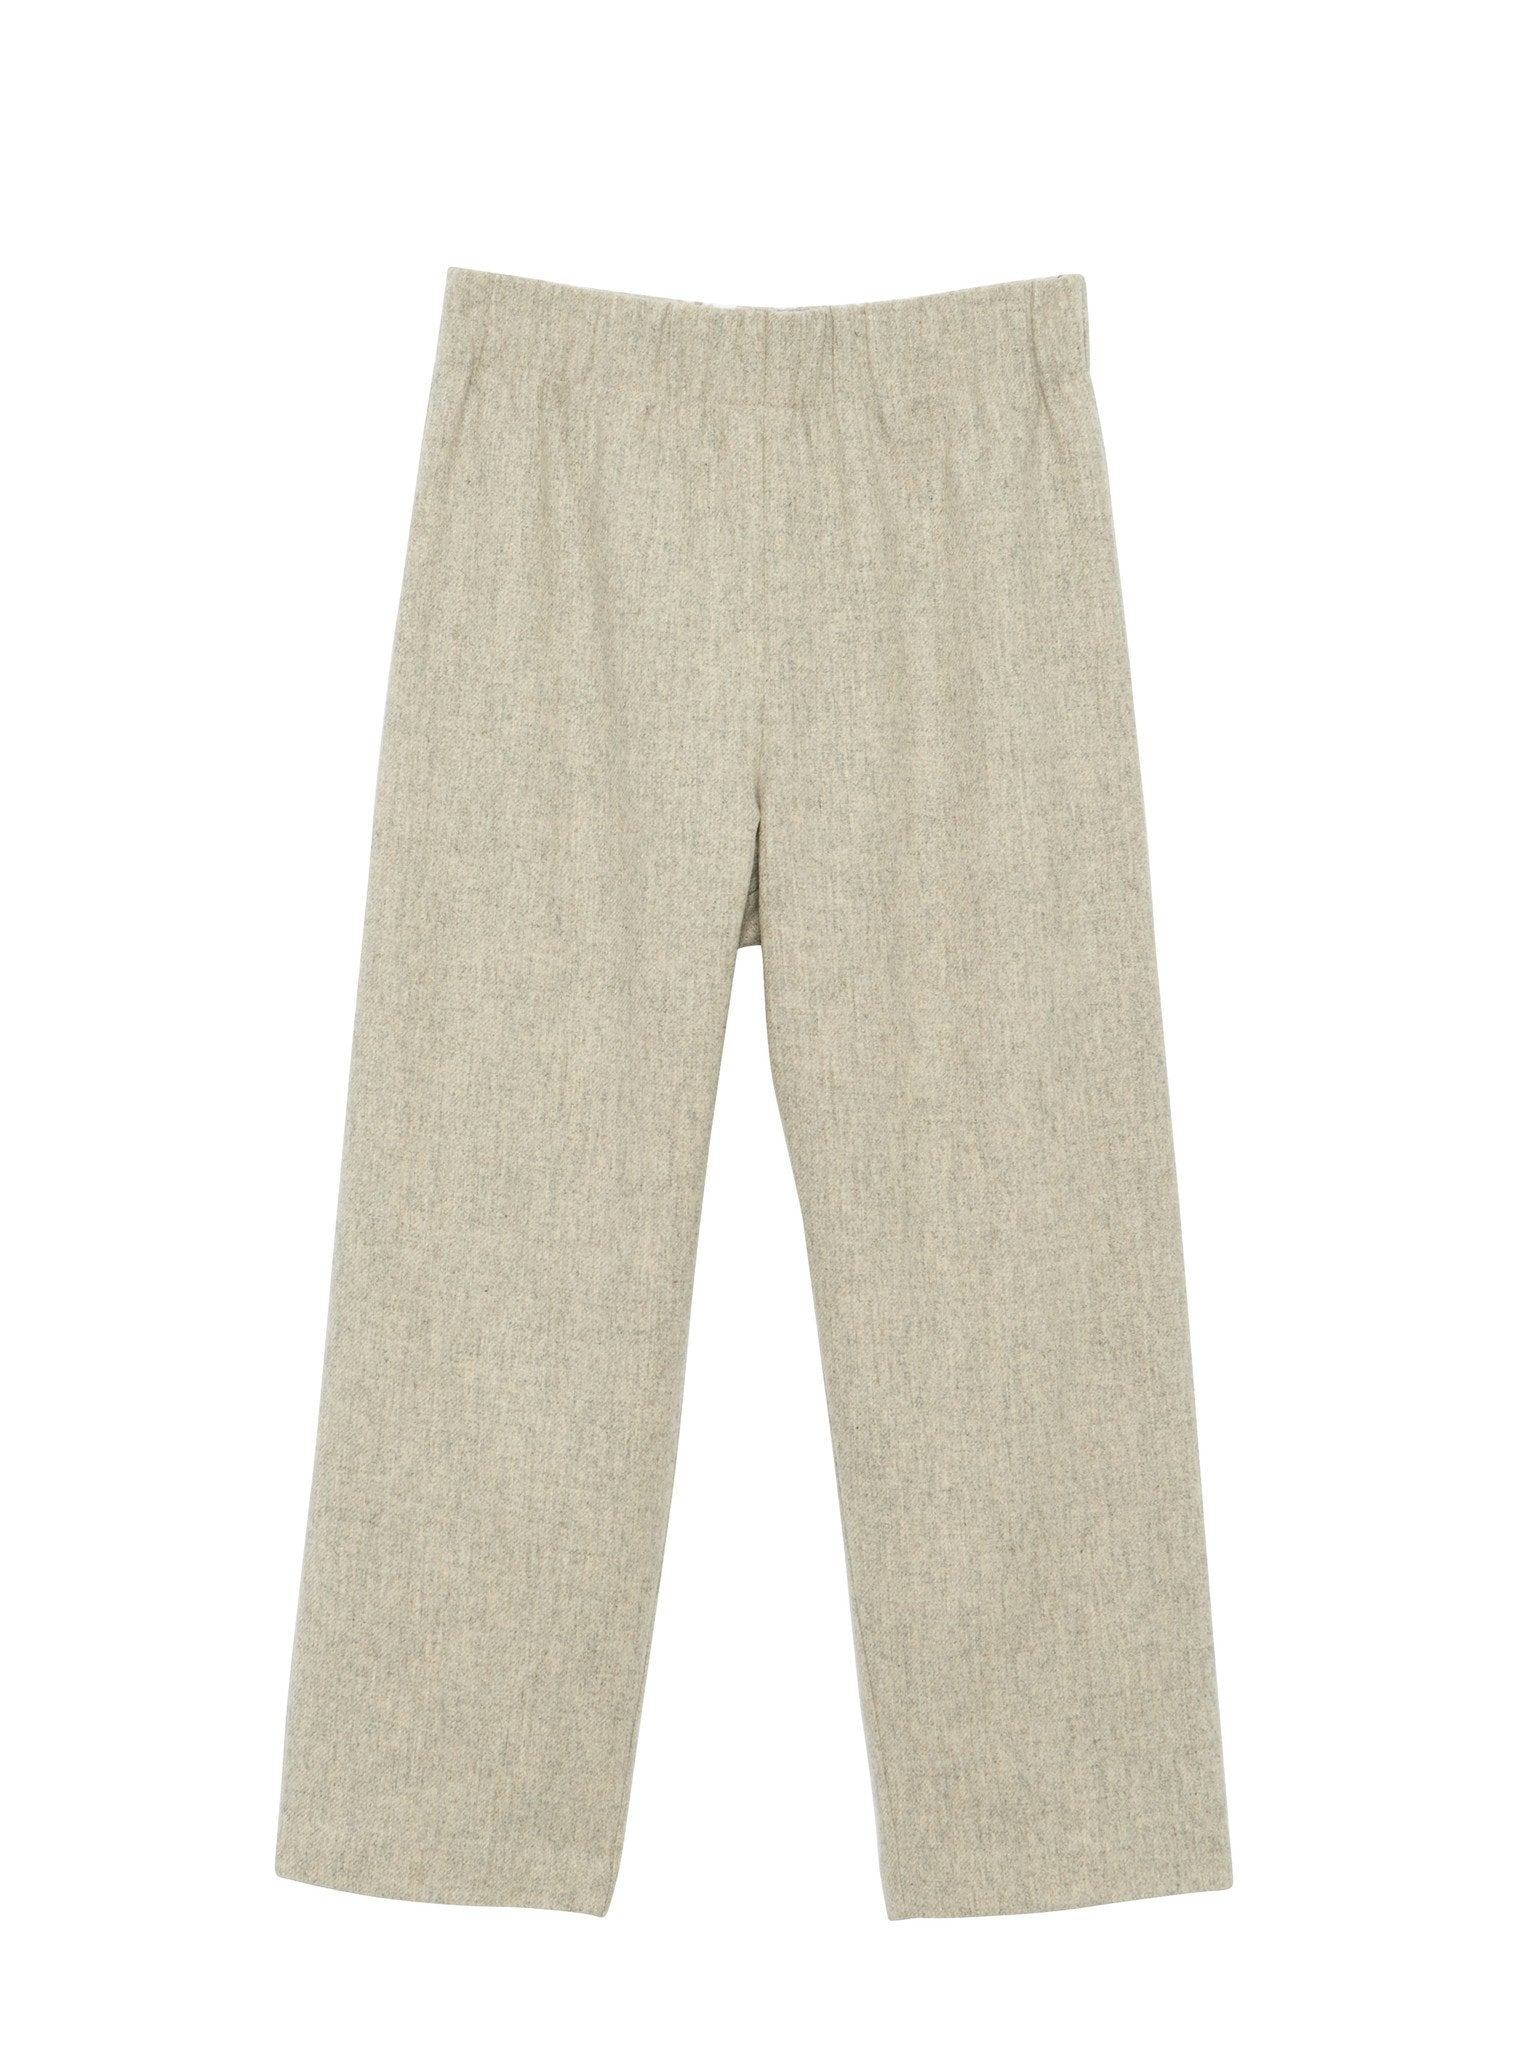 Deck Pants / Grey Wool